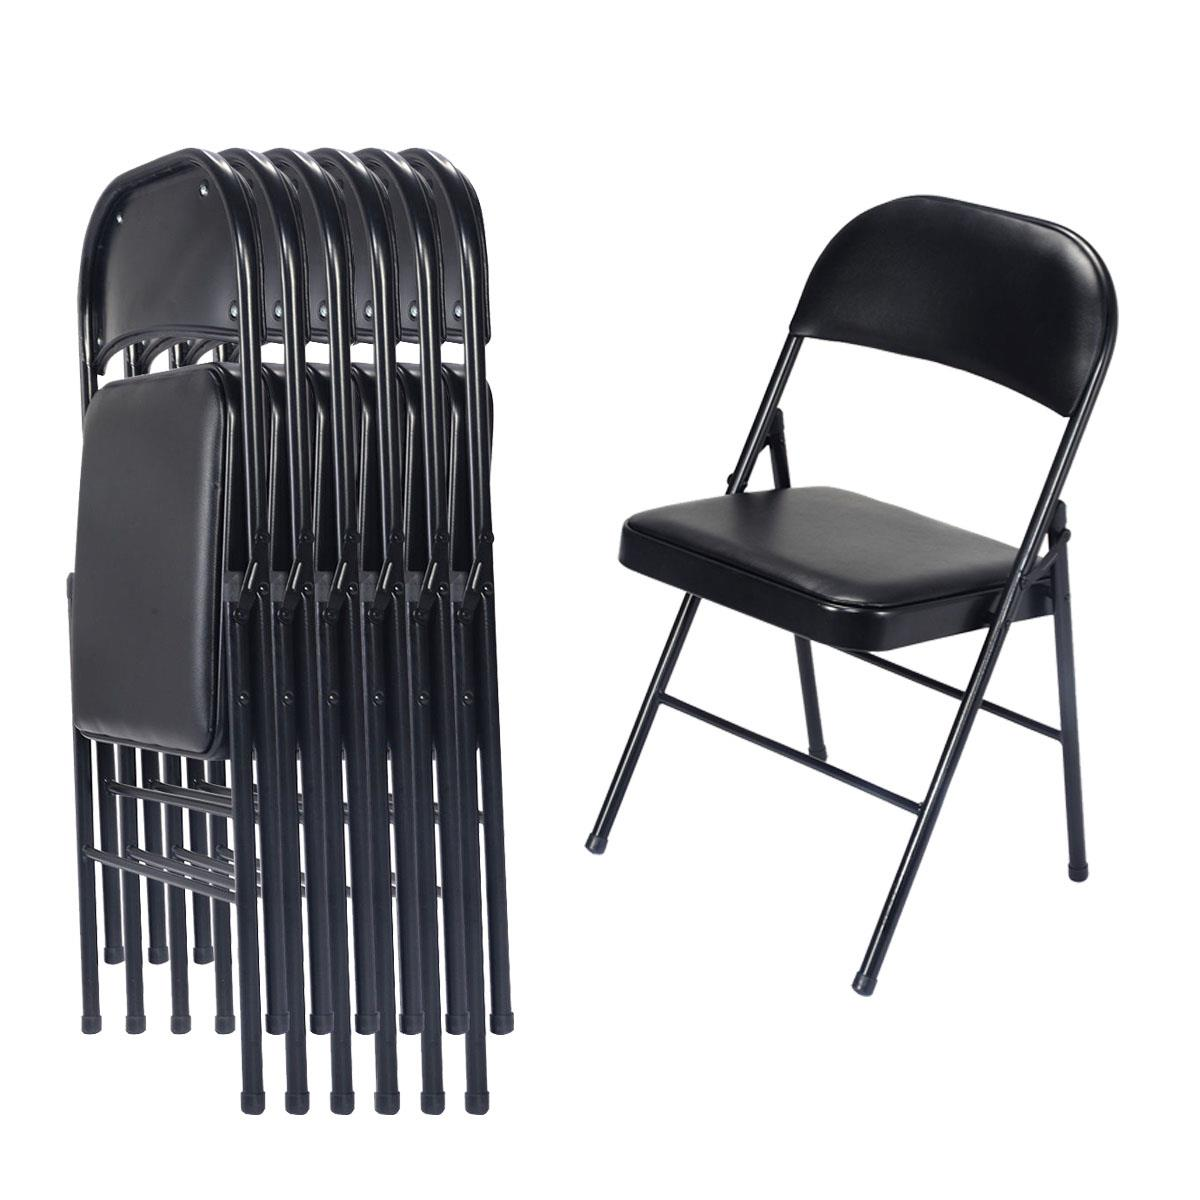 1 x Black Folding Home Easily Stores Away Party Office Reception Soft Padded Tubular Chair Light Weight